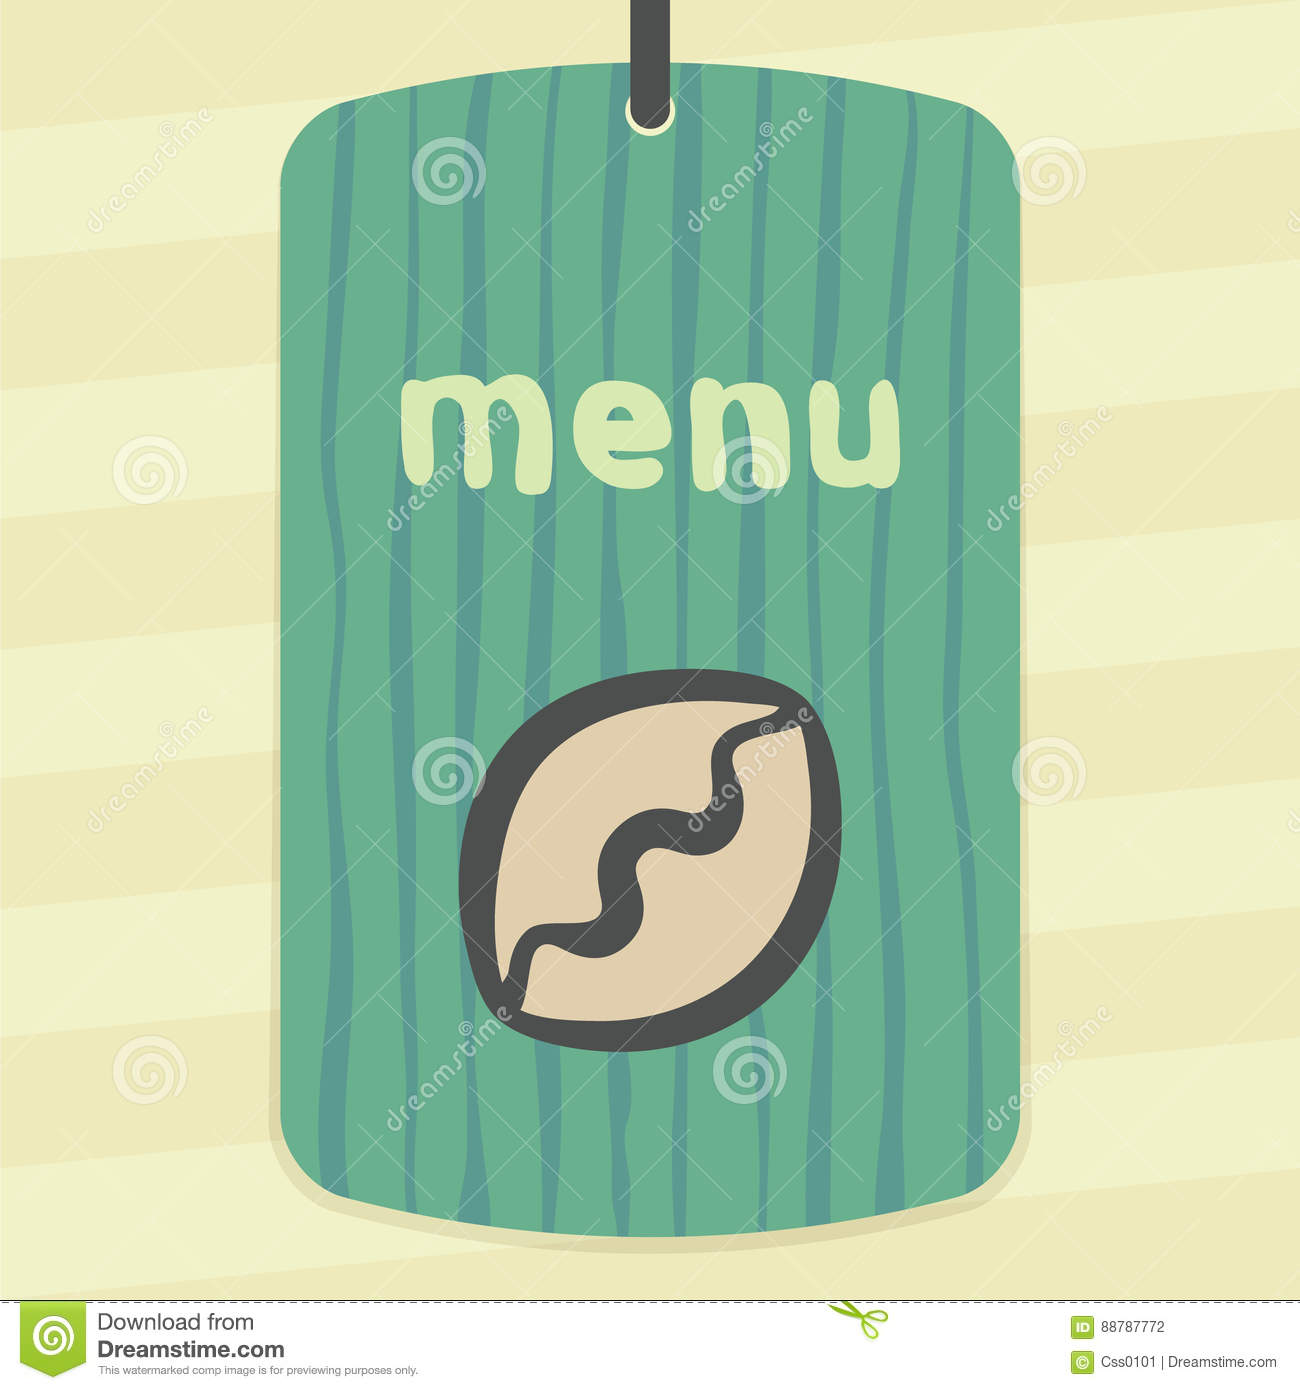 Vector outline pie or dumpling icon. Modern infographic logo and pictogram.